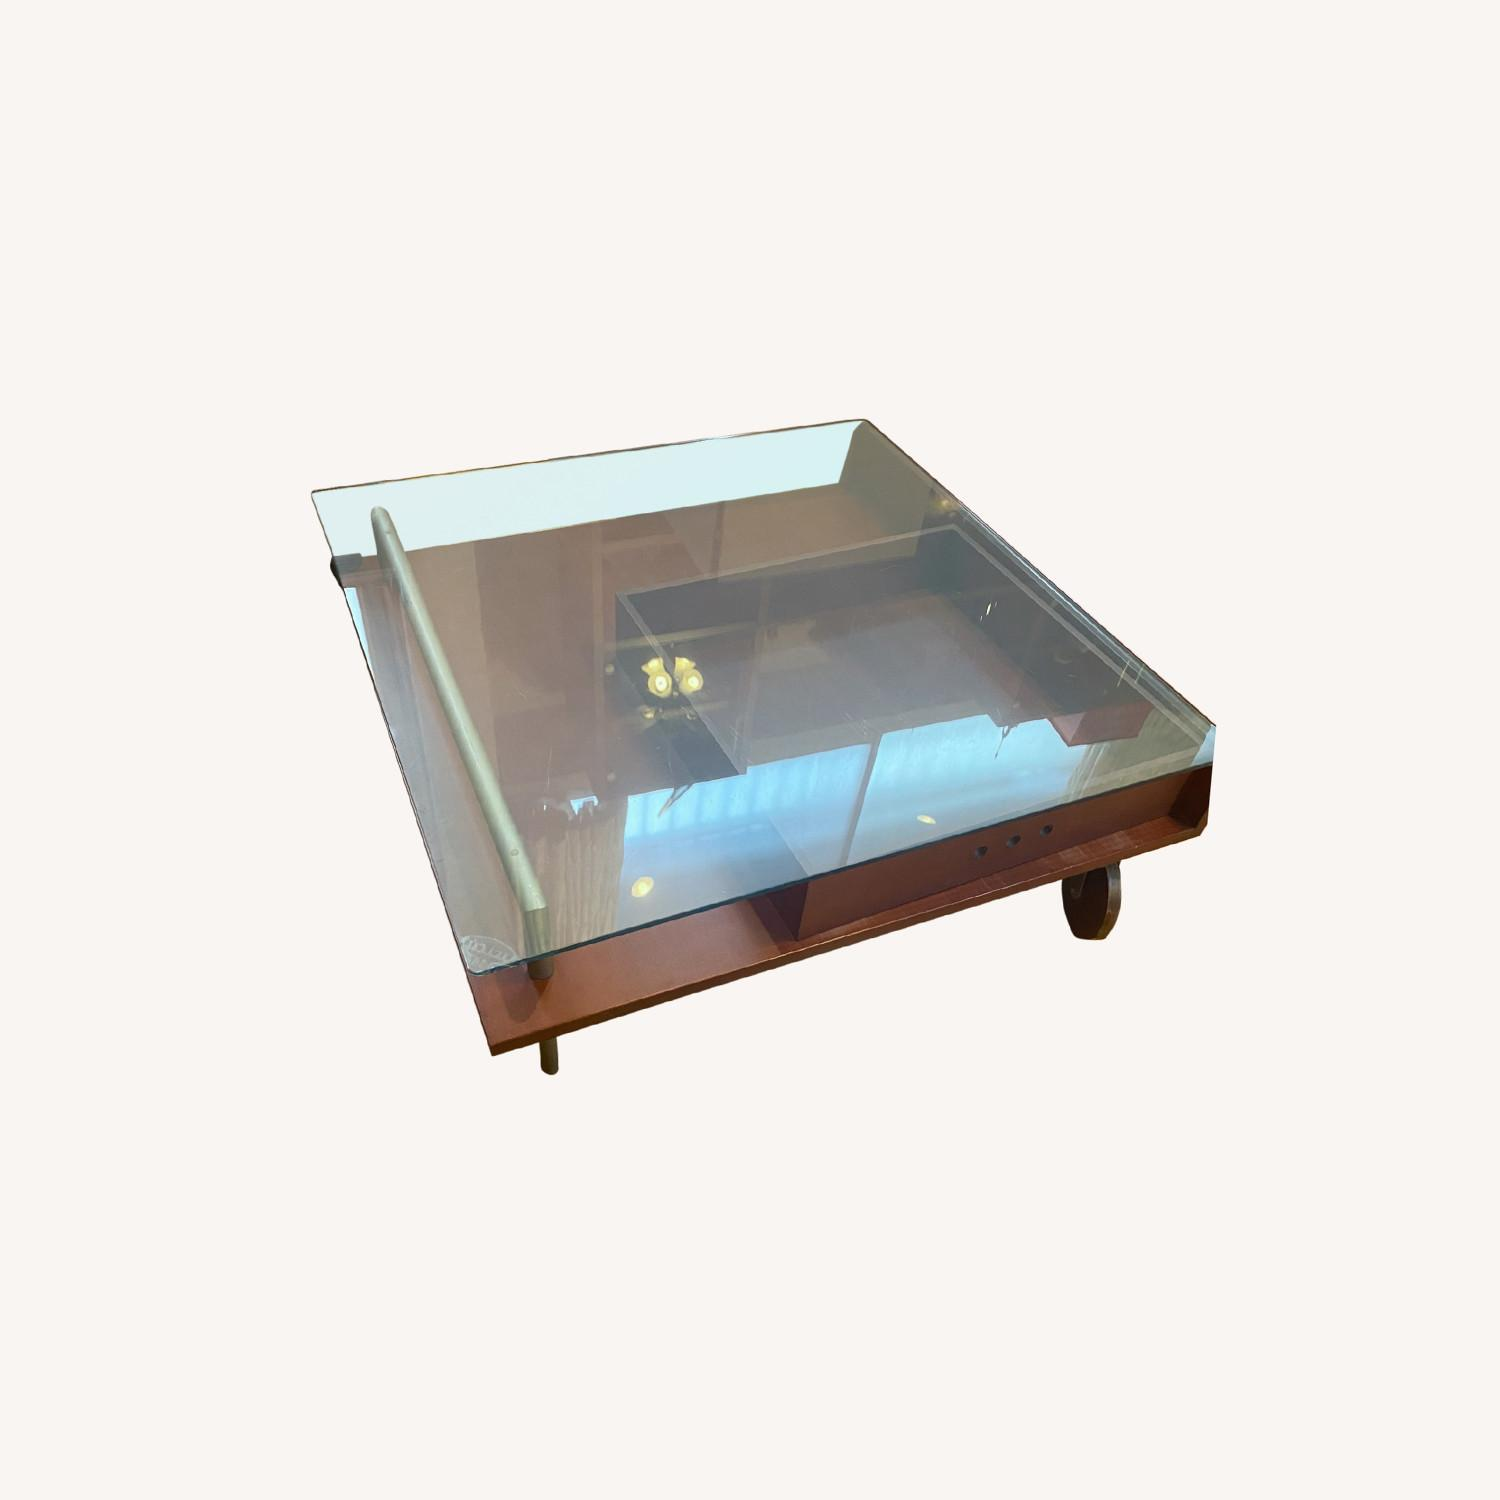 Danish Style Coffee Table with Storage - image-0